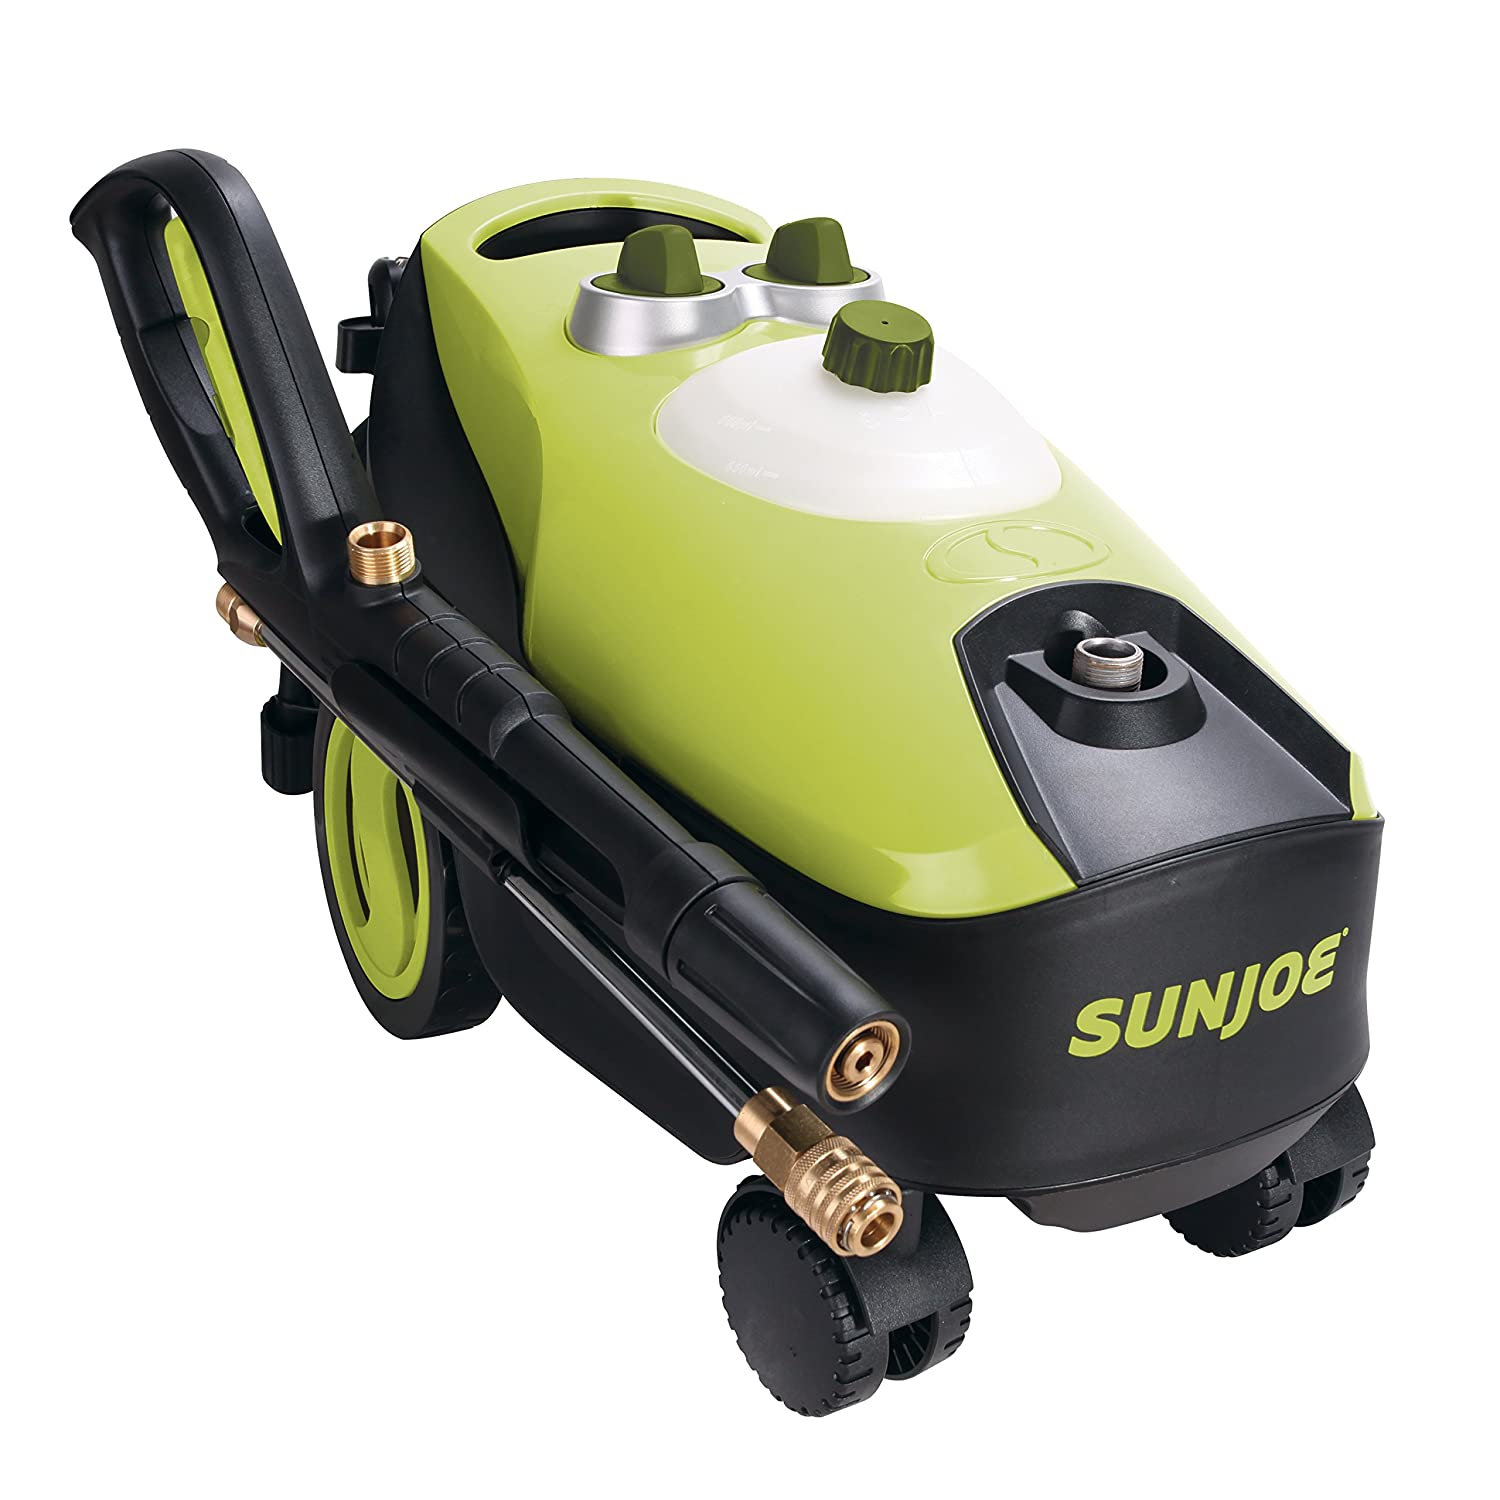 Sun Joe SPX3200 Electric Pressure Washer